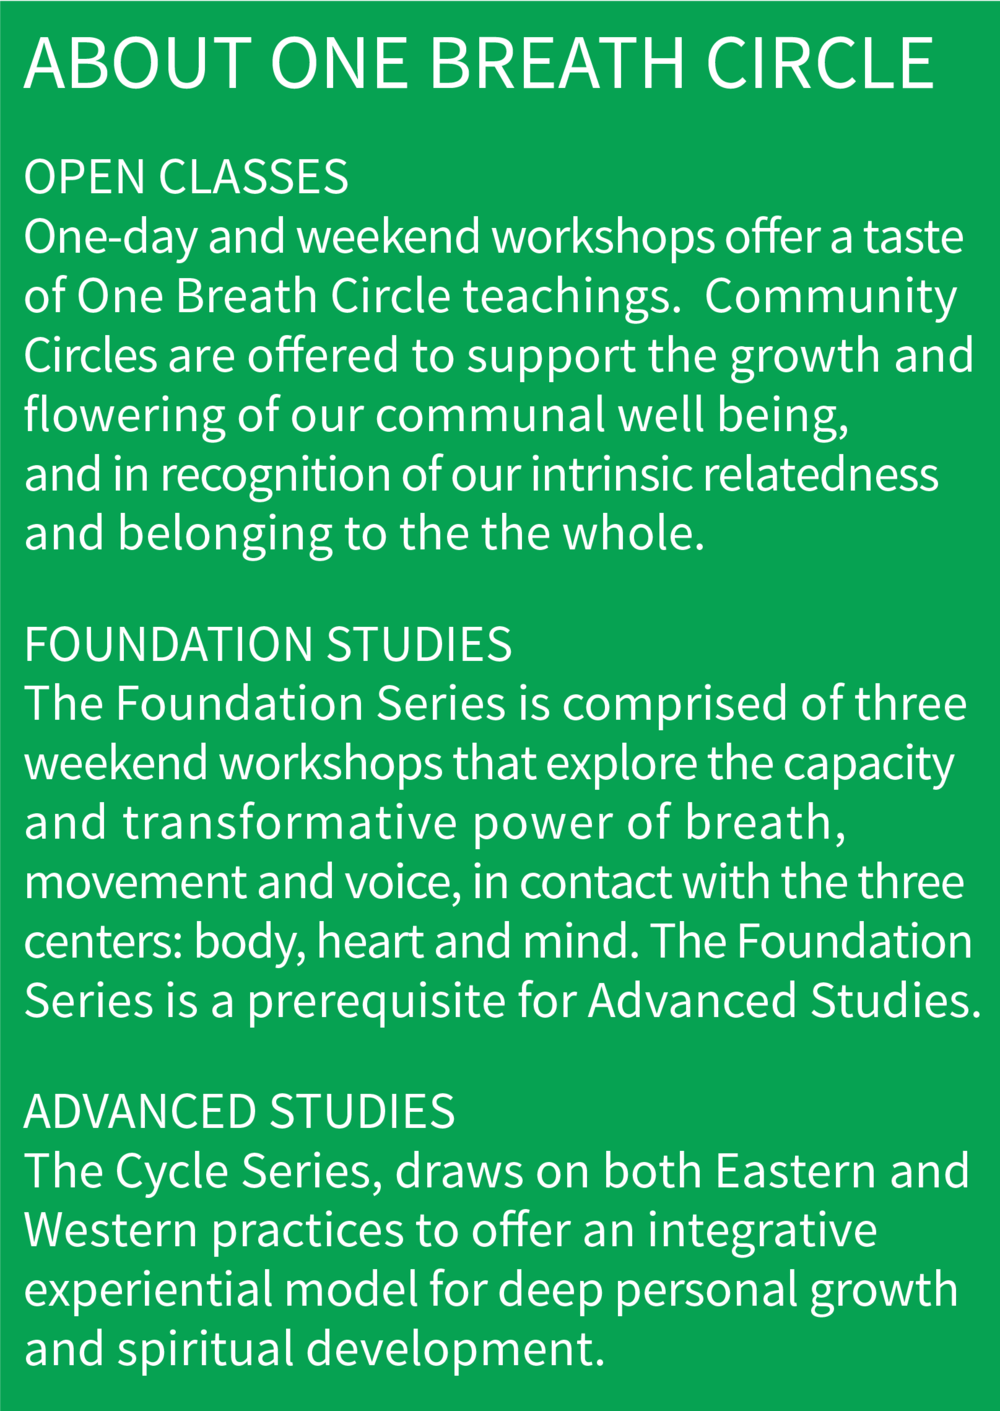 One Breath Circle offers Open Classes, Foundation Studies and Advanced Studies.